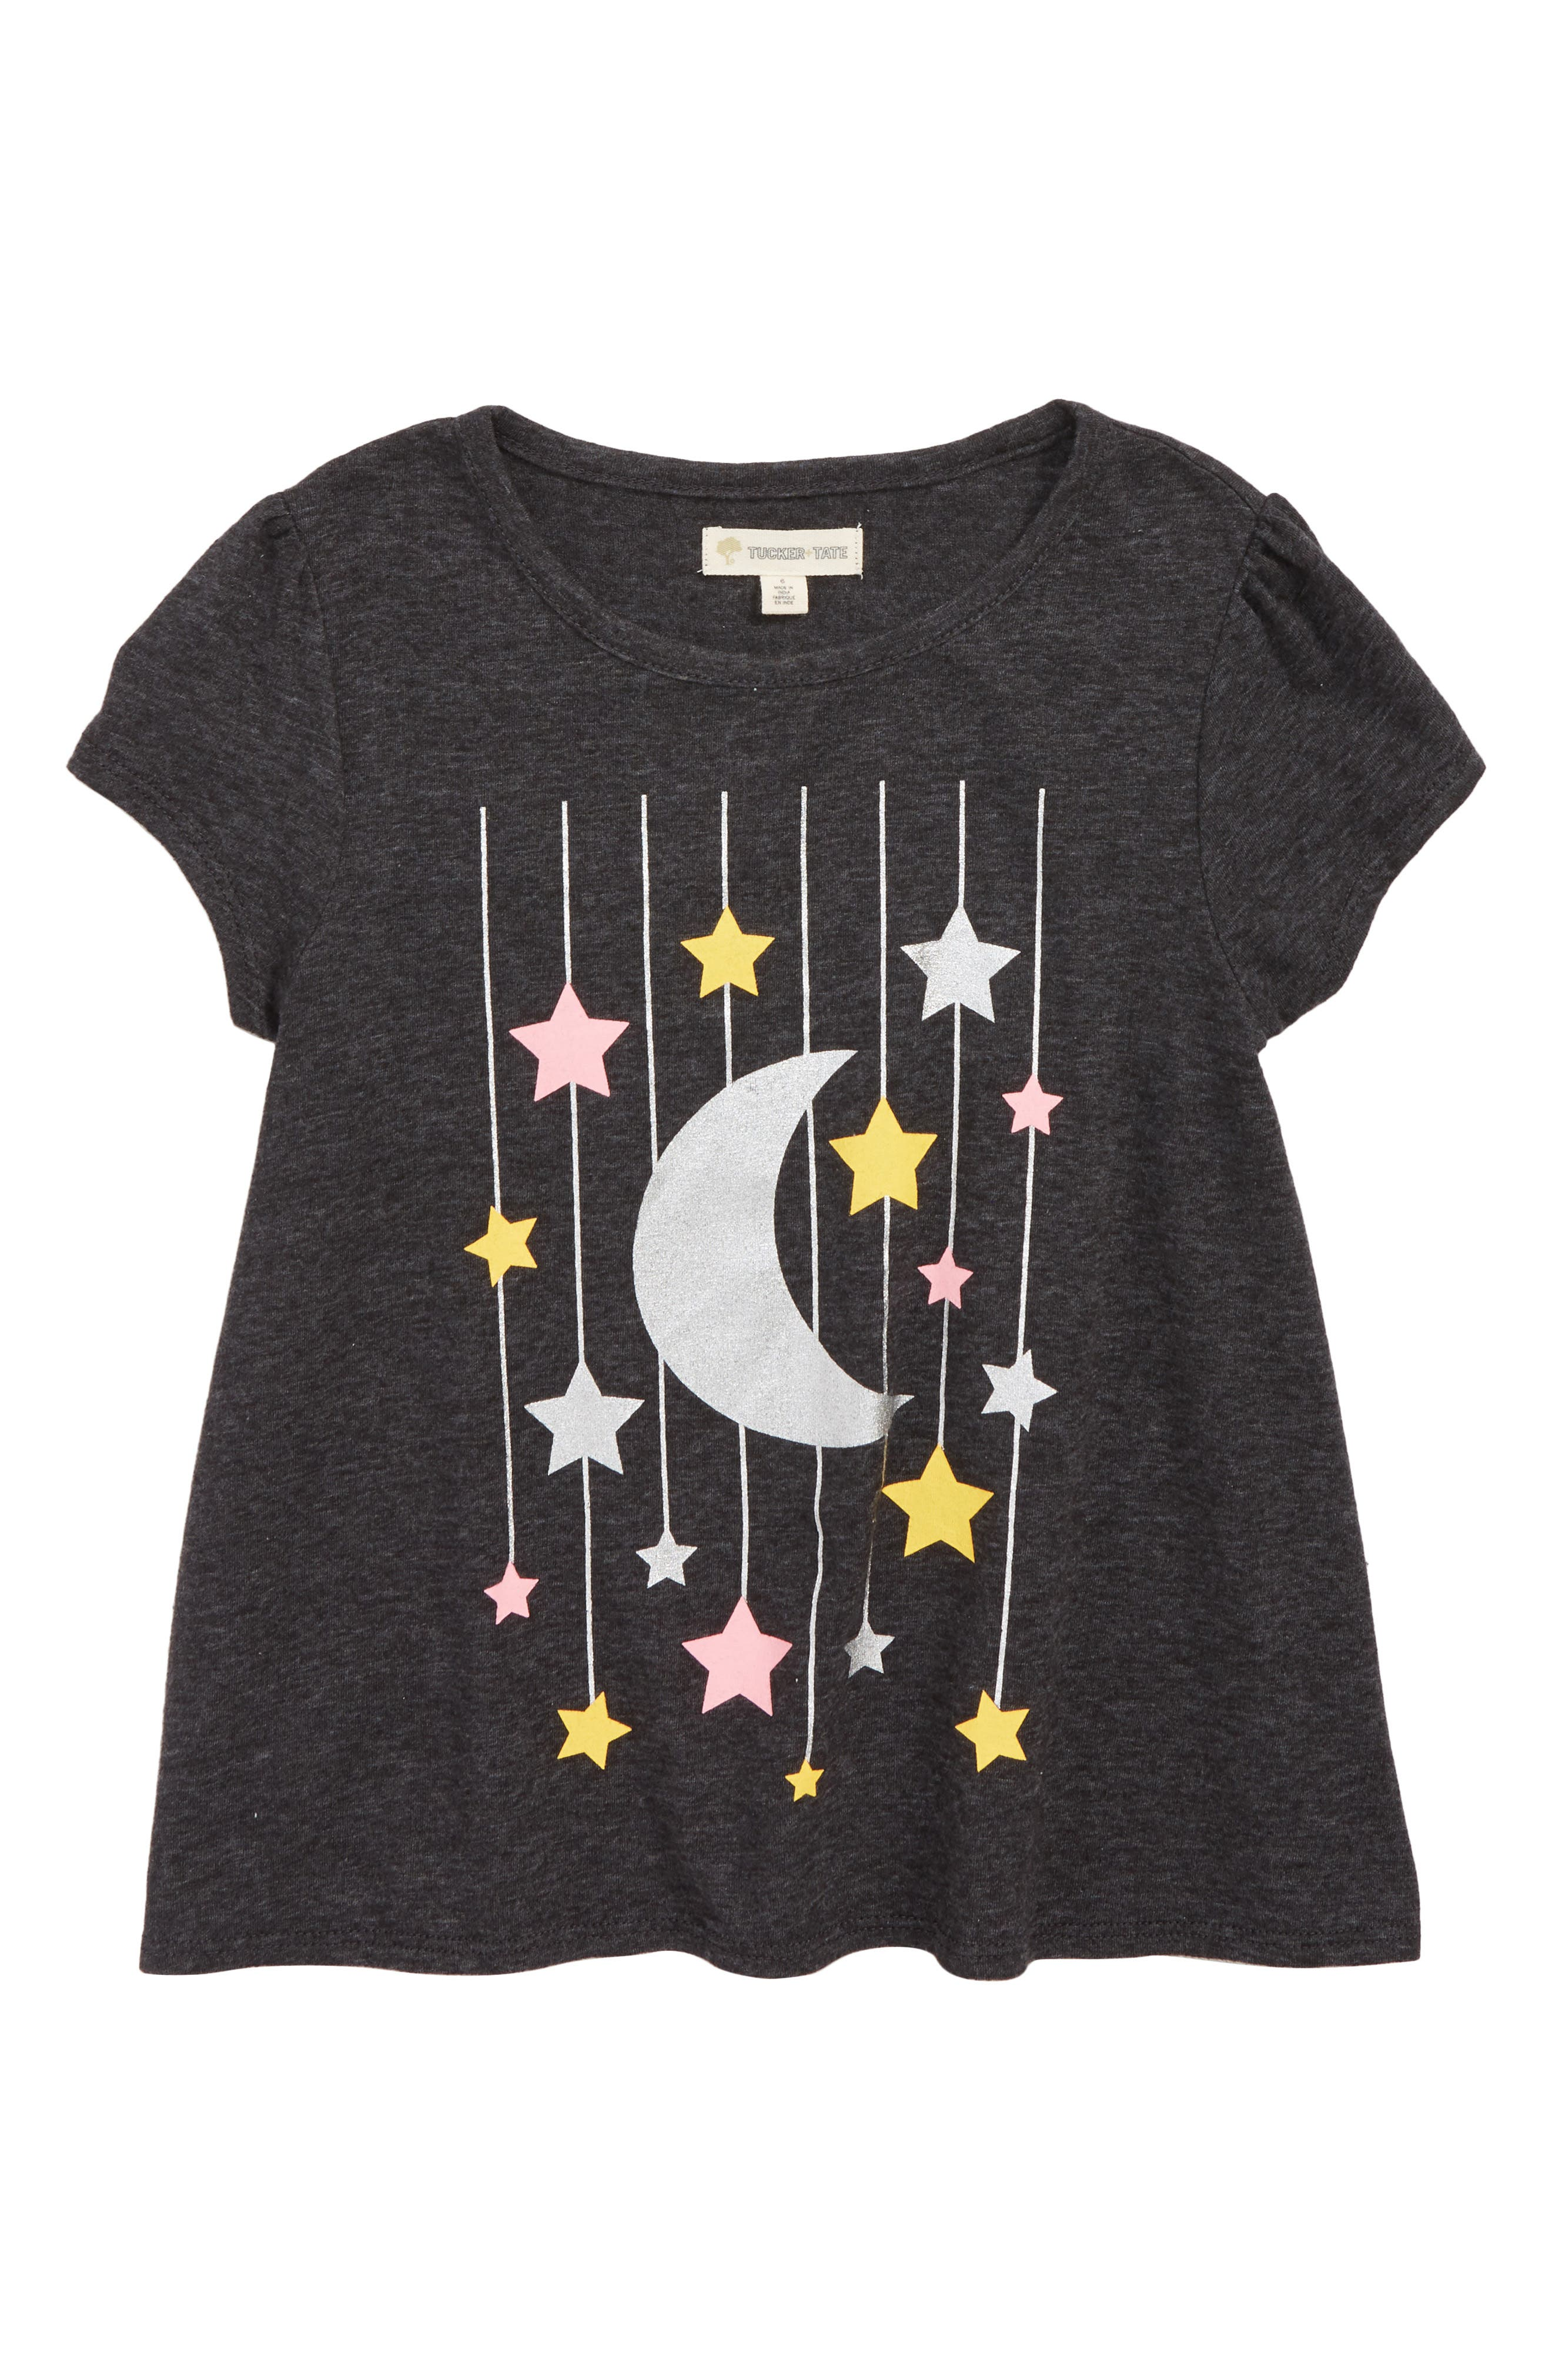 Sparkle Graphic Tee,                             Main thumbnail 1, color,                             BLACK MOON AND STARS